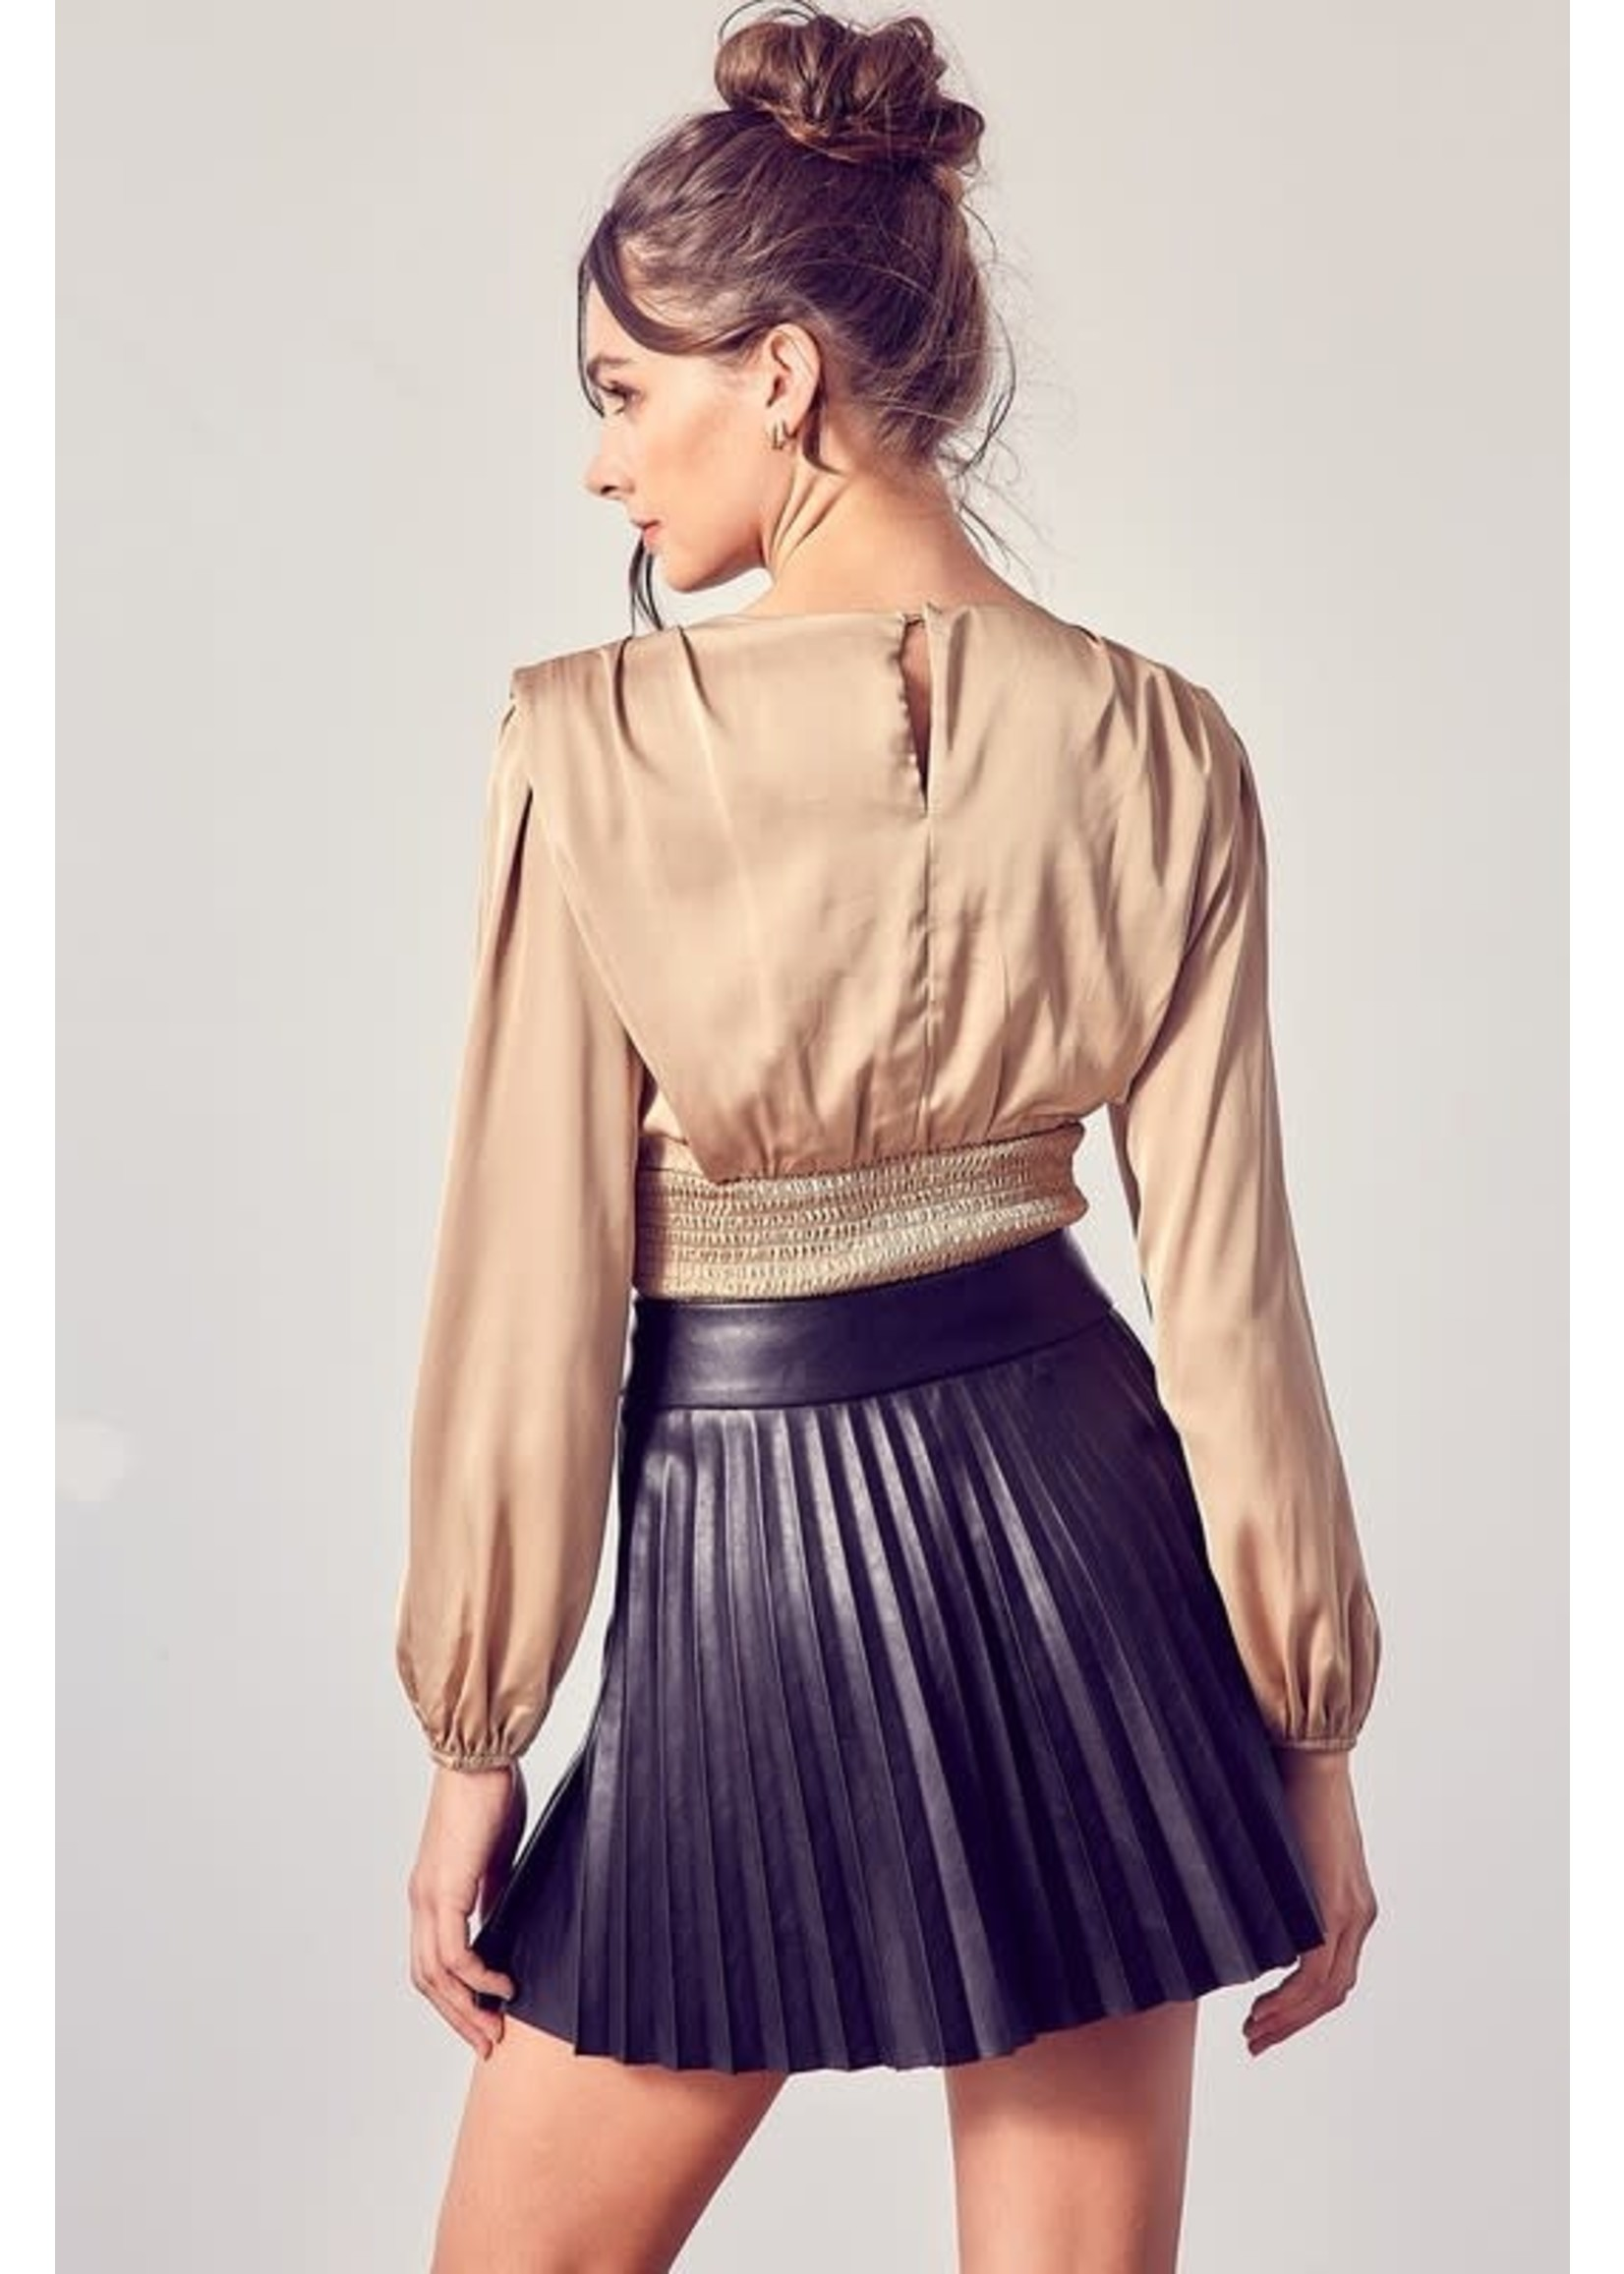 DO + BE Long Sleeved Pleated Corset Top - Y20793